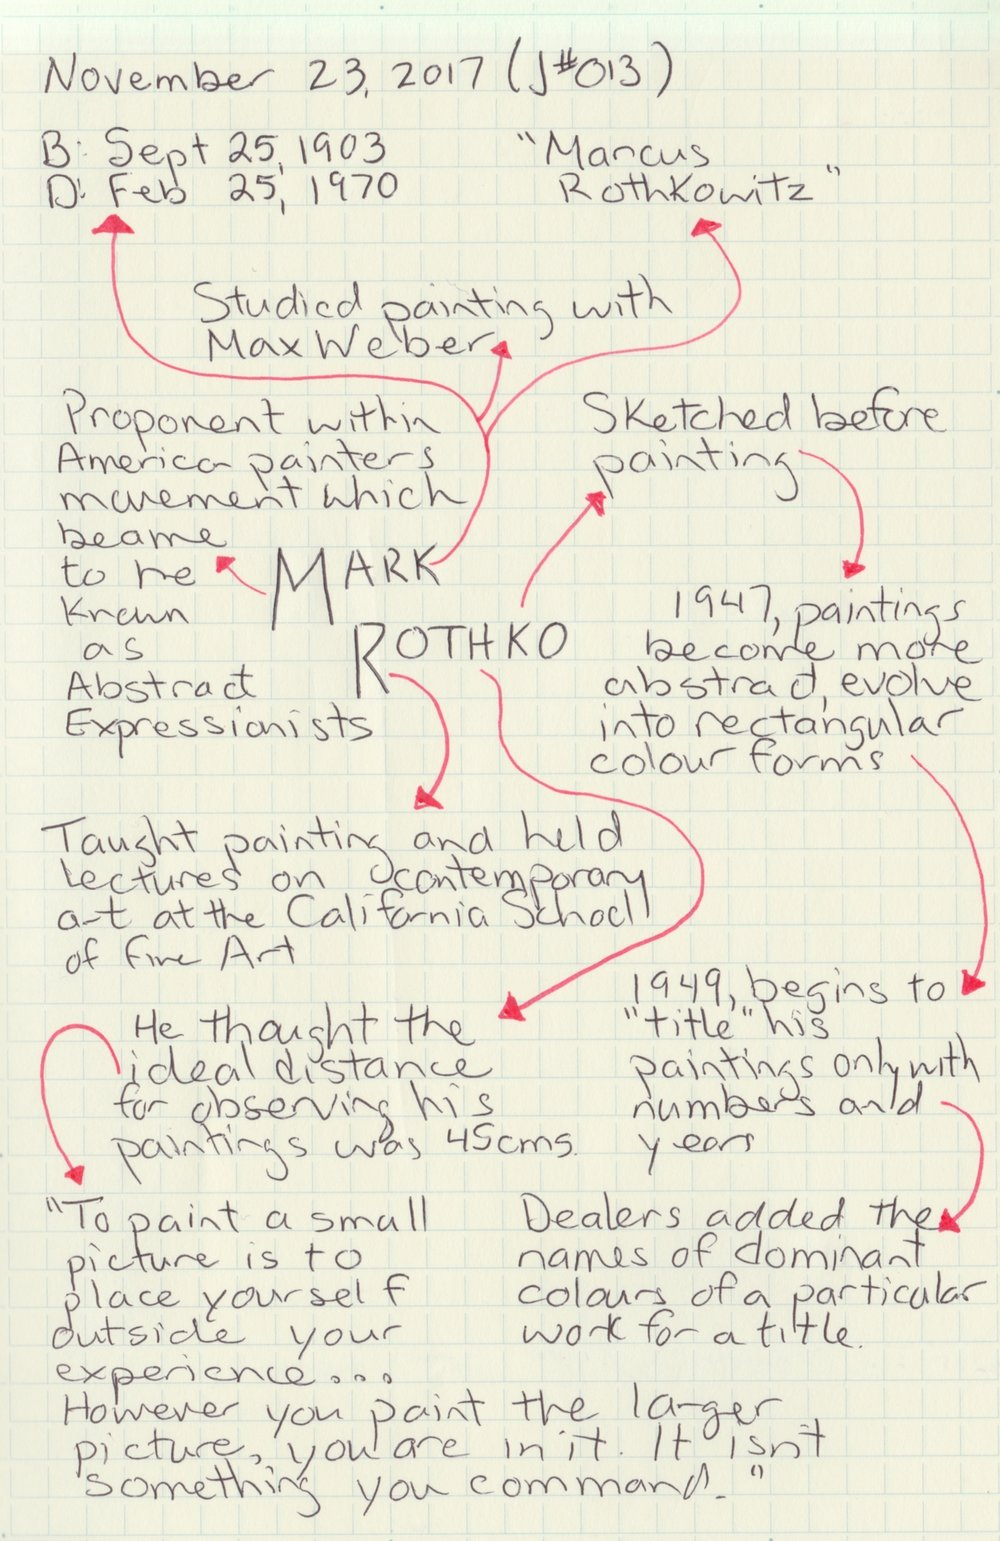 Mark Rothko (November 24, 2017 Journal #013)